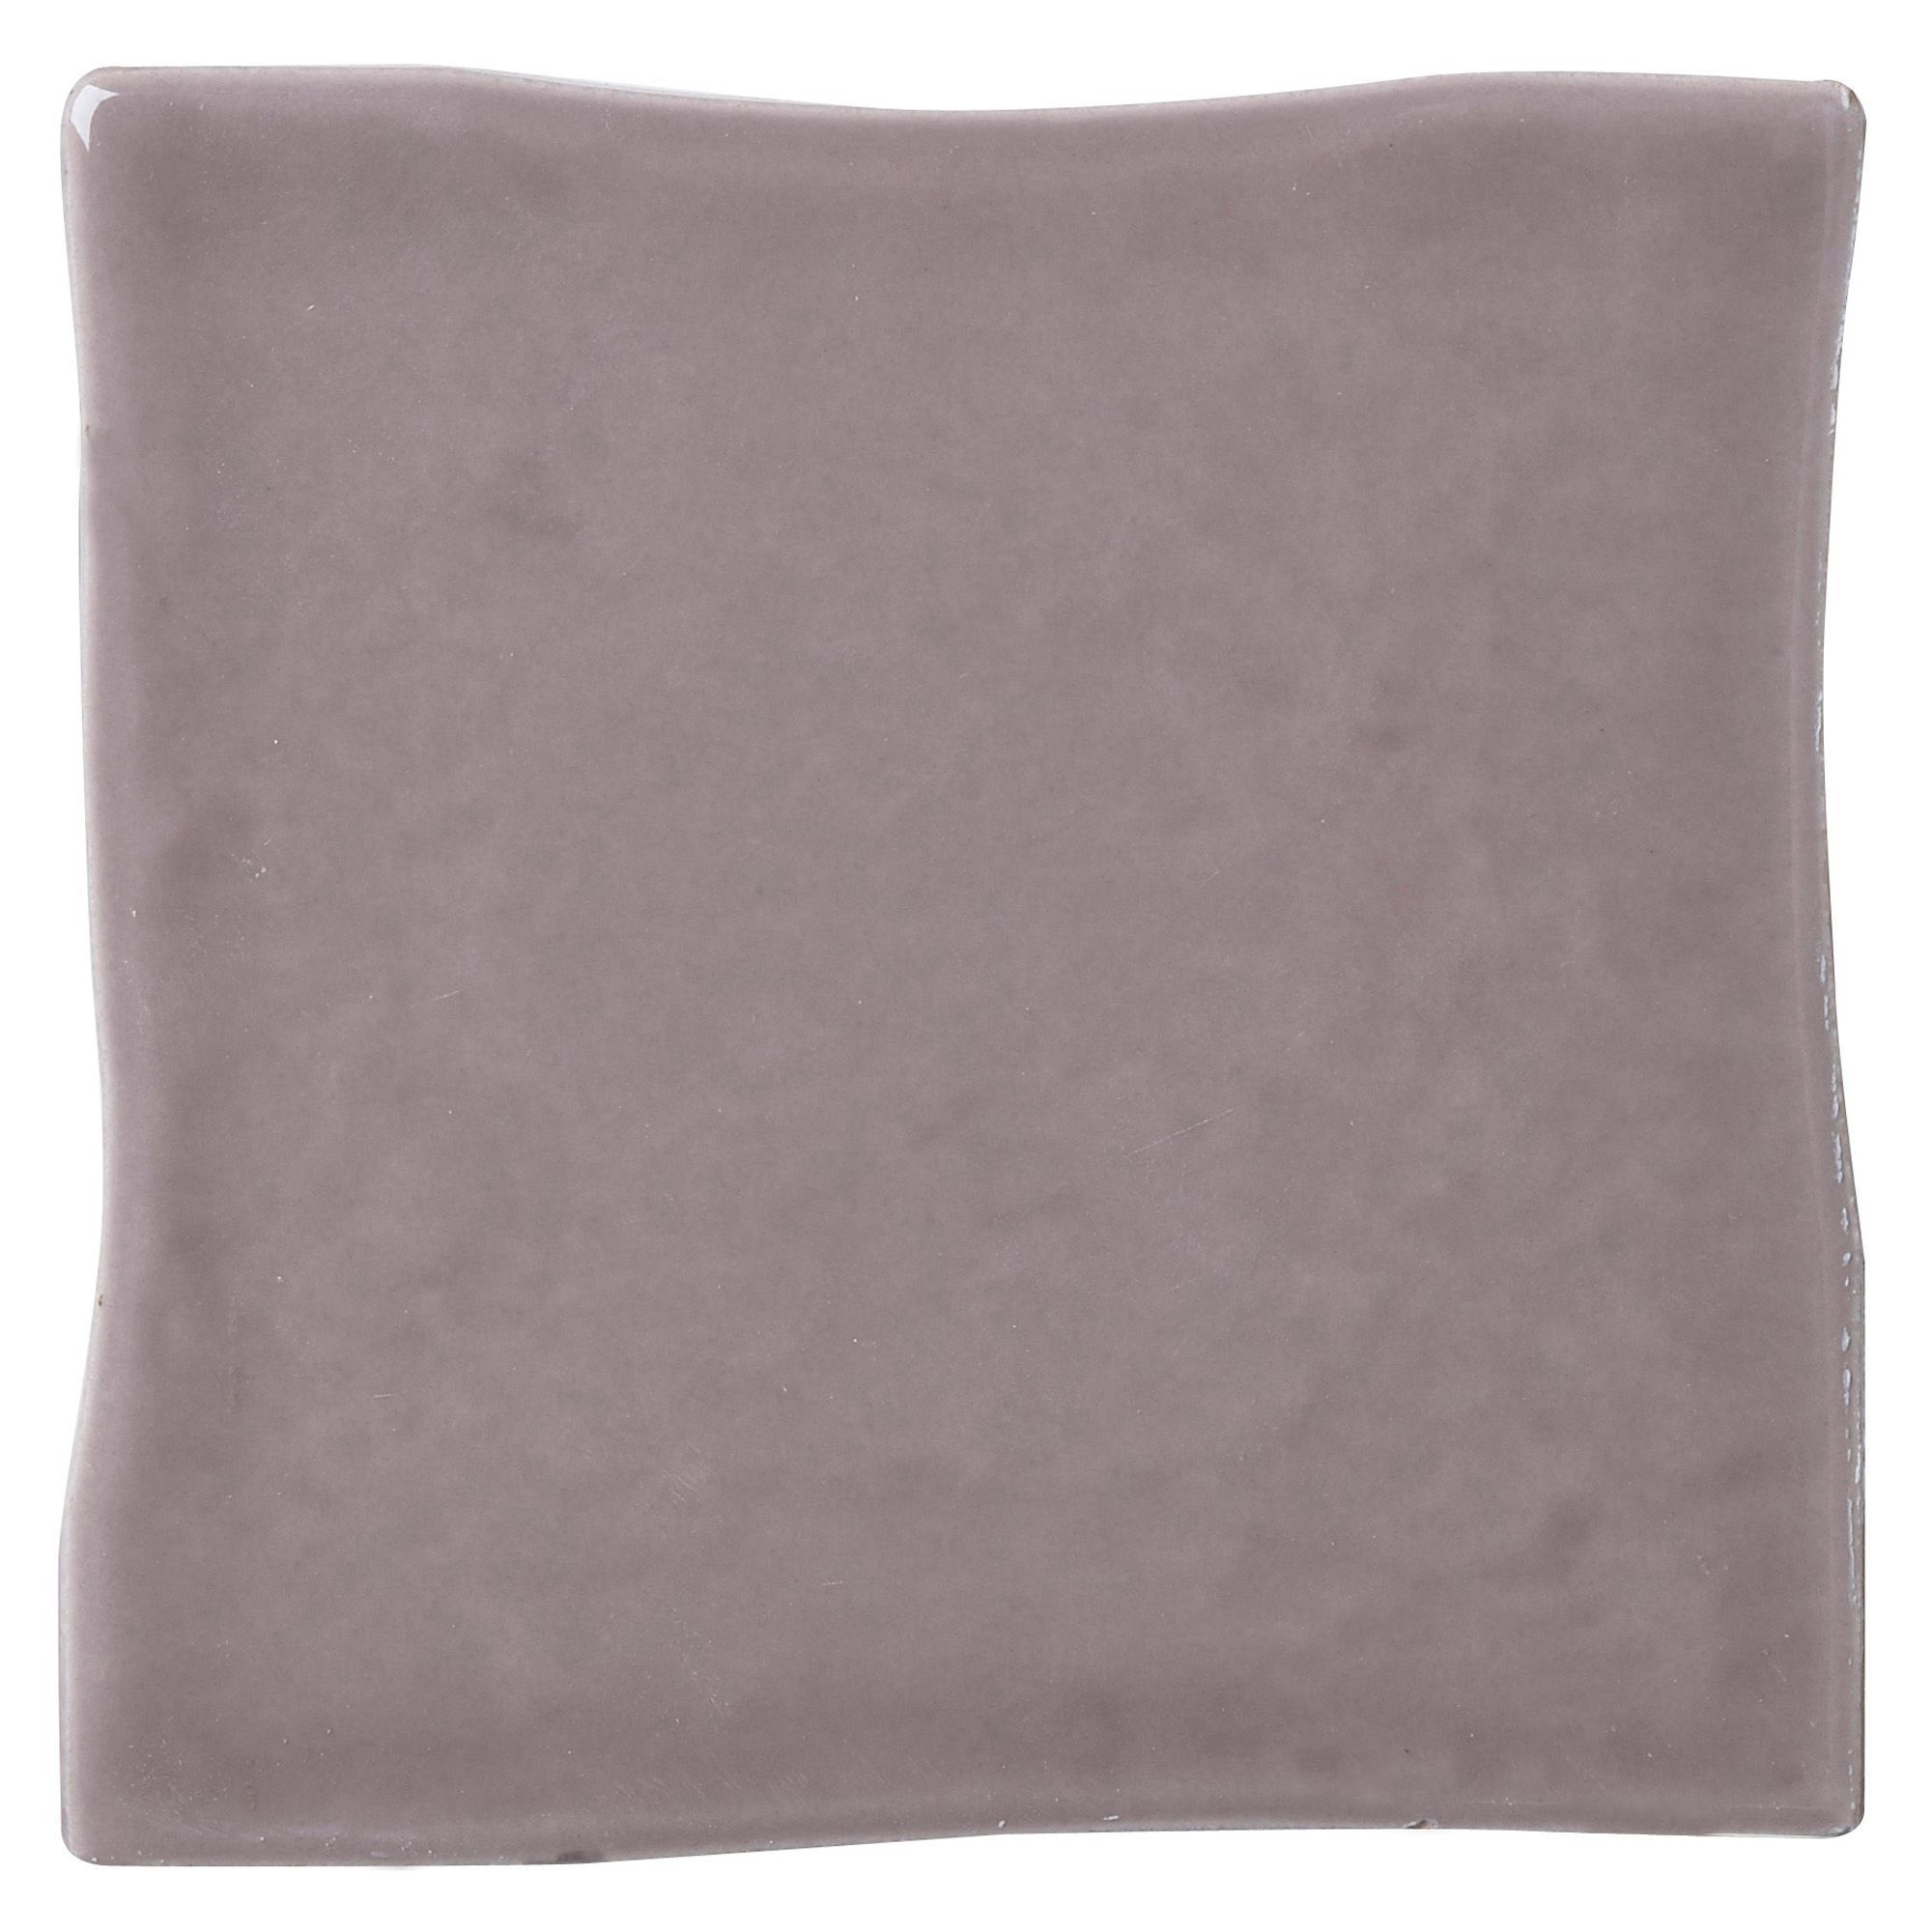 Padstow Taupe Ceramic Wall Tile, Pack Of 25, (l)100mm (w)100mm